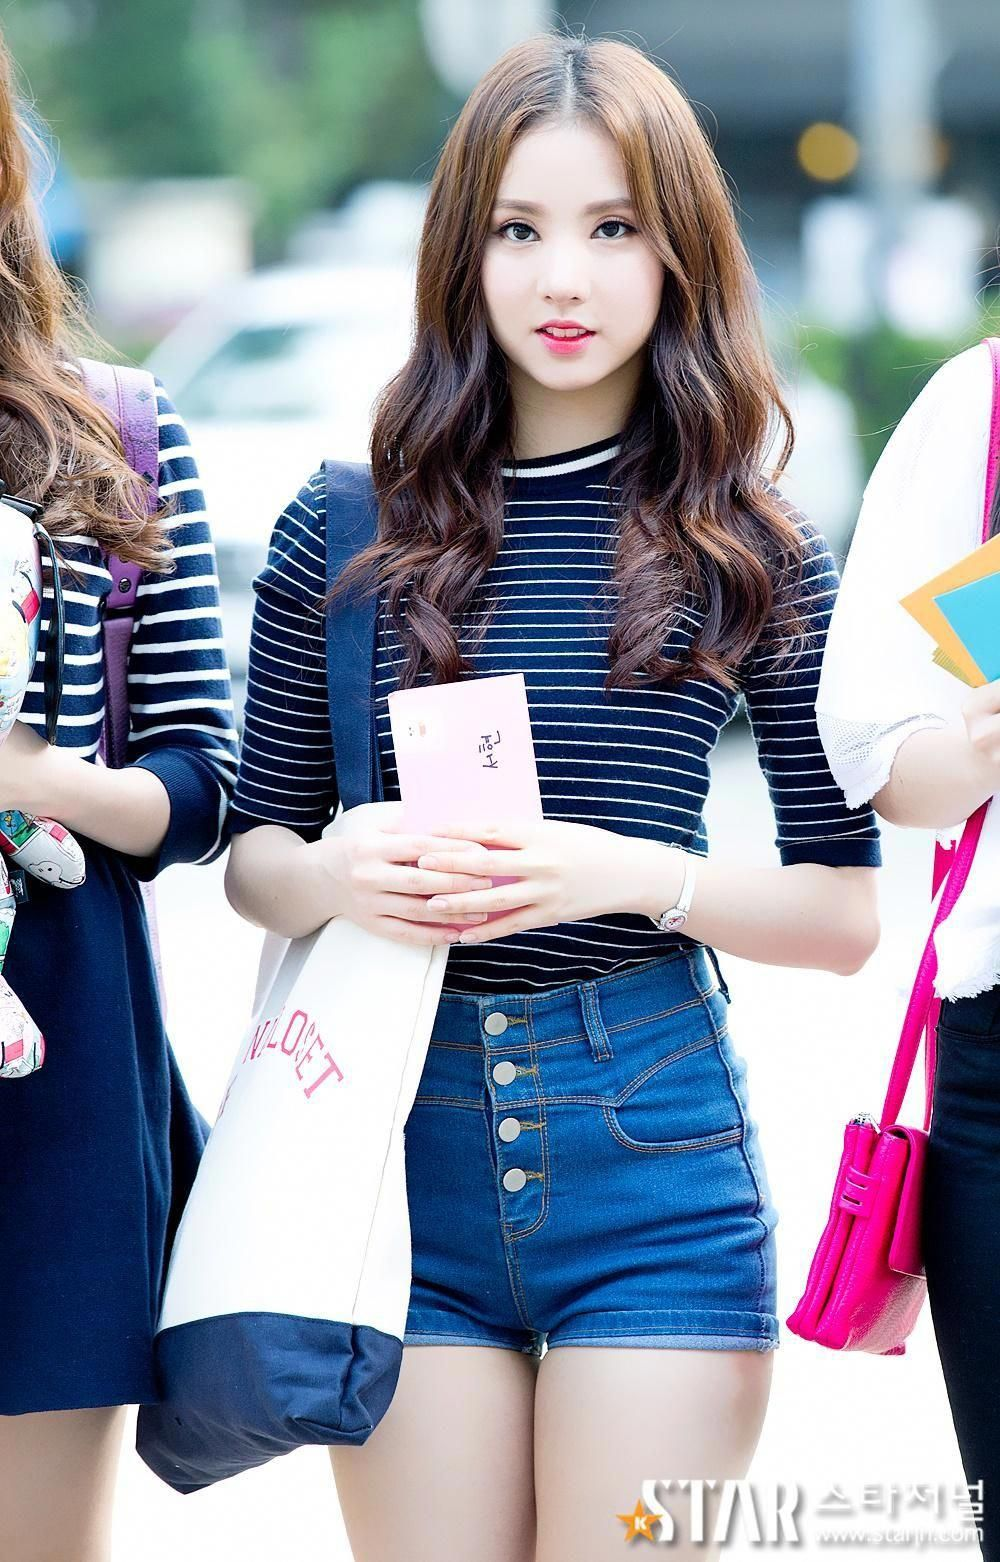 Gfriend Eunha Born In South Korea In 1997 Fashion Kpop Fashioninkorea Korean Outfits Fashion Korean Fashion